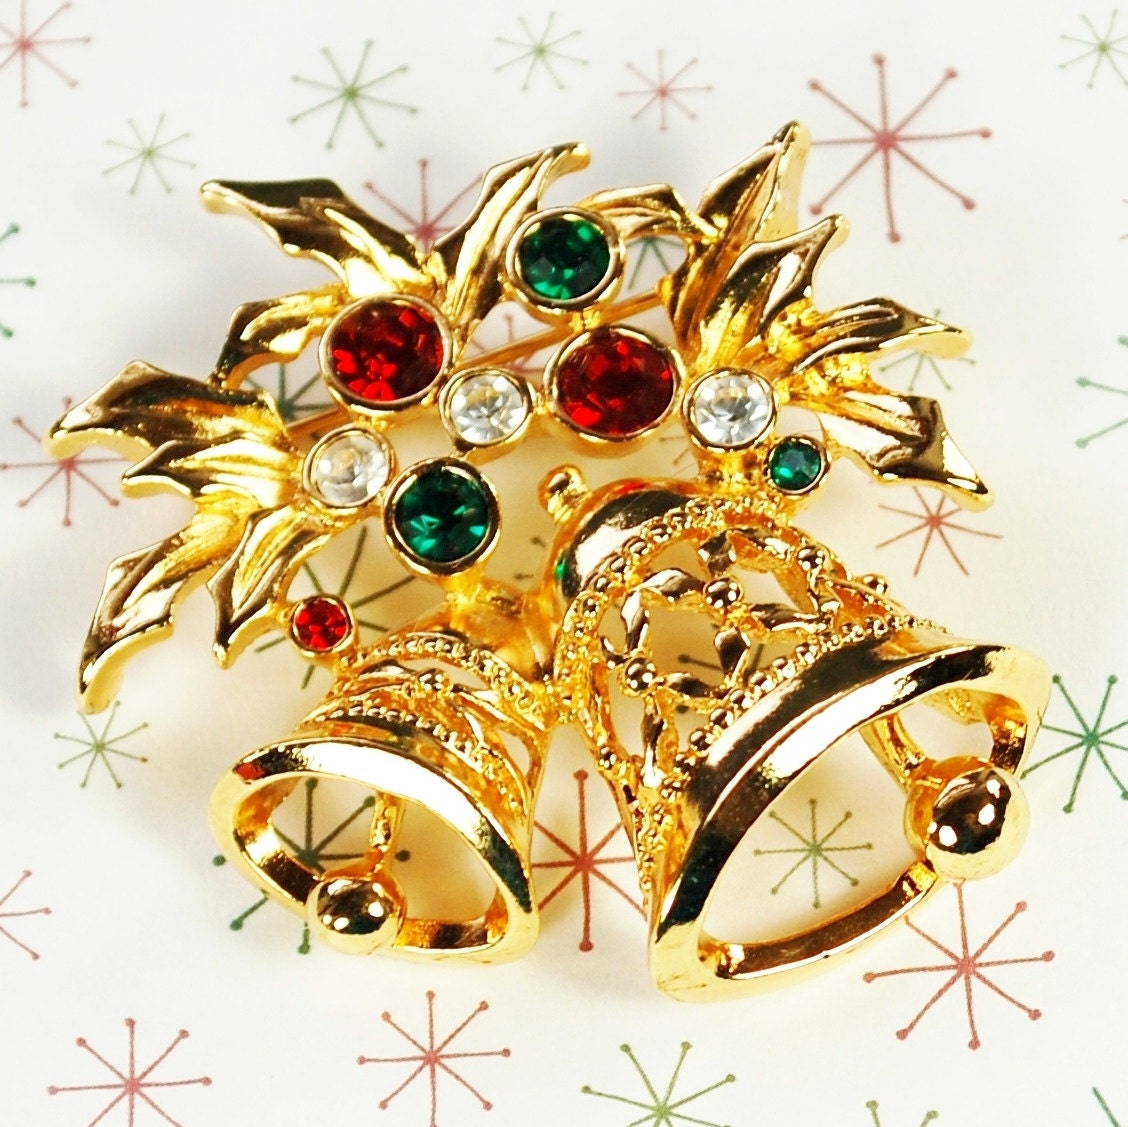 Vintage Christmas Brooch / Pin Gold Bells Holly Leaves Red